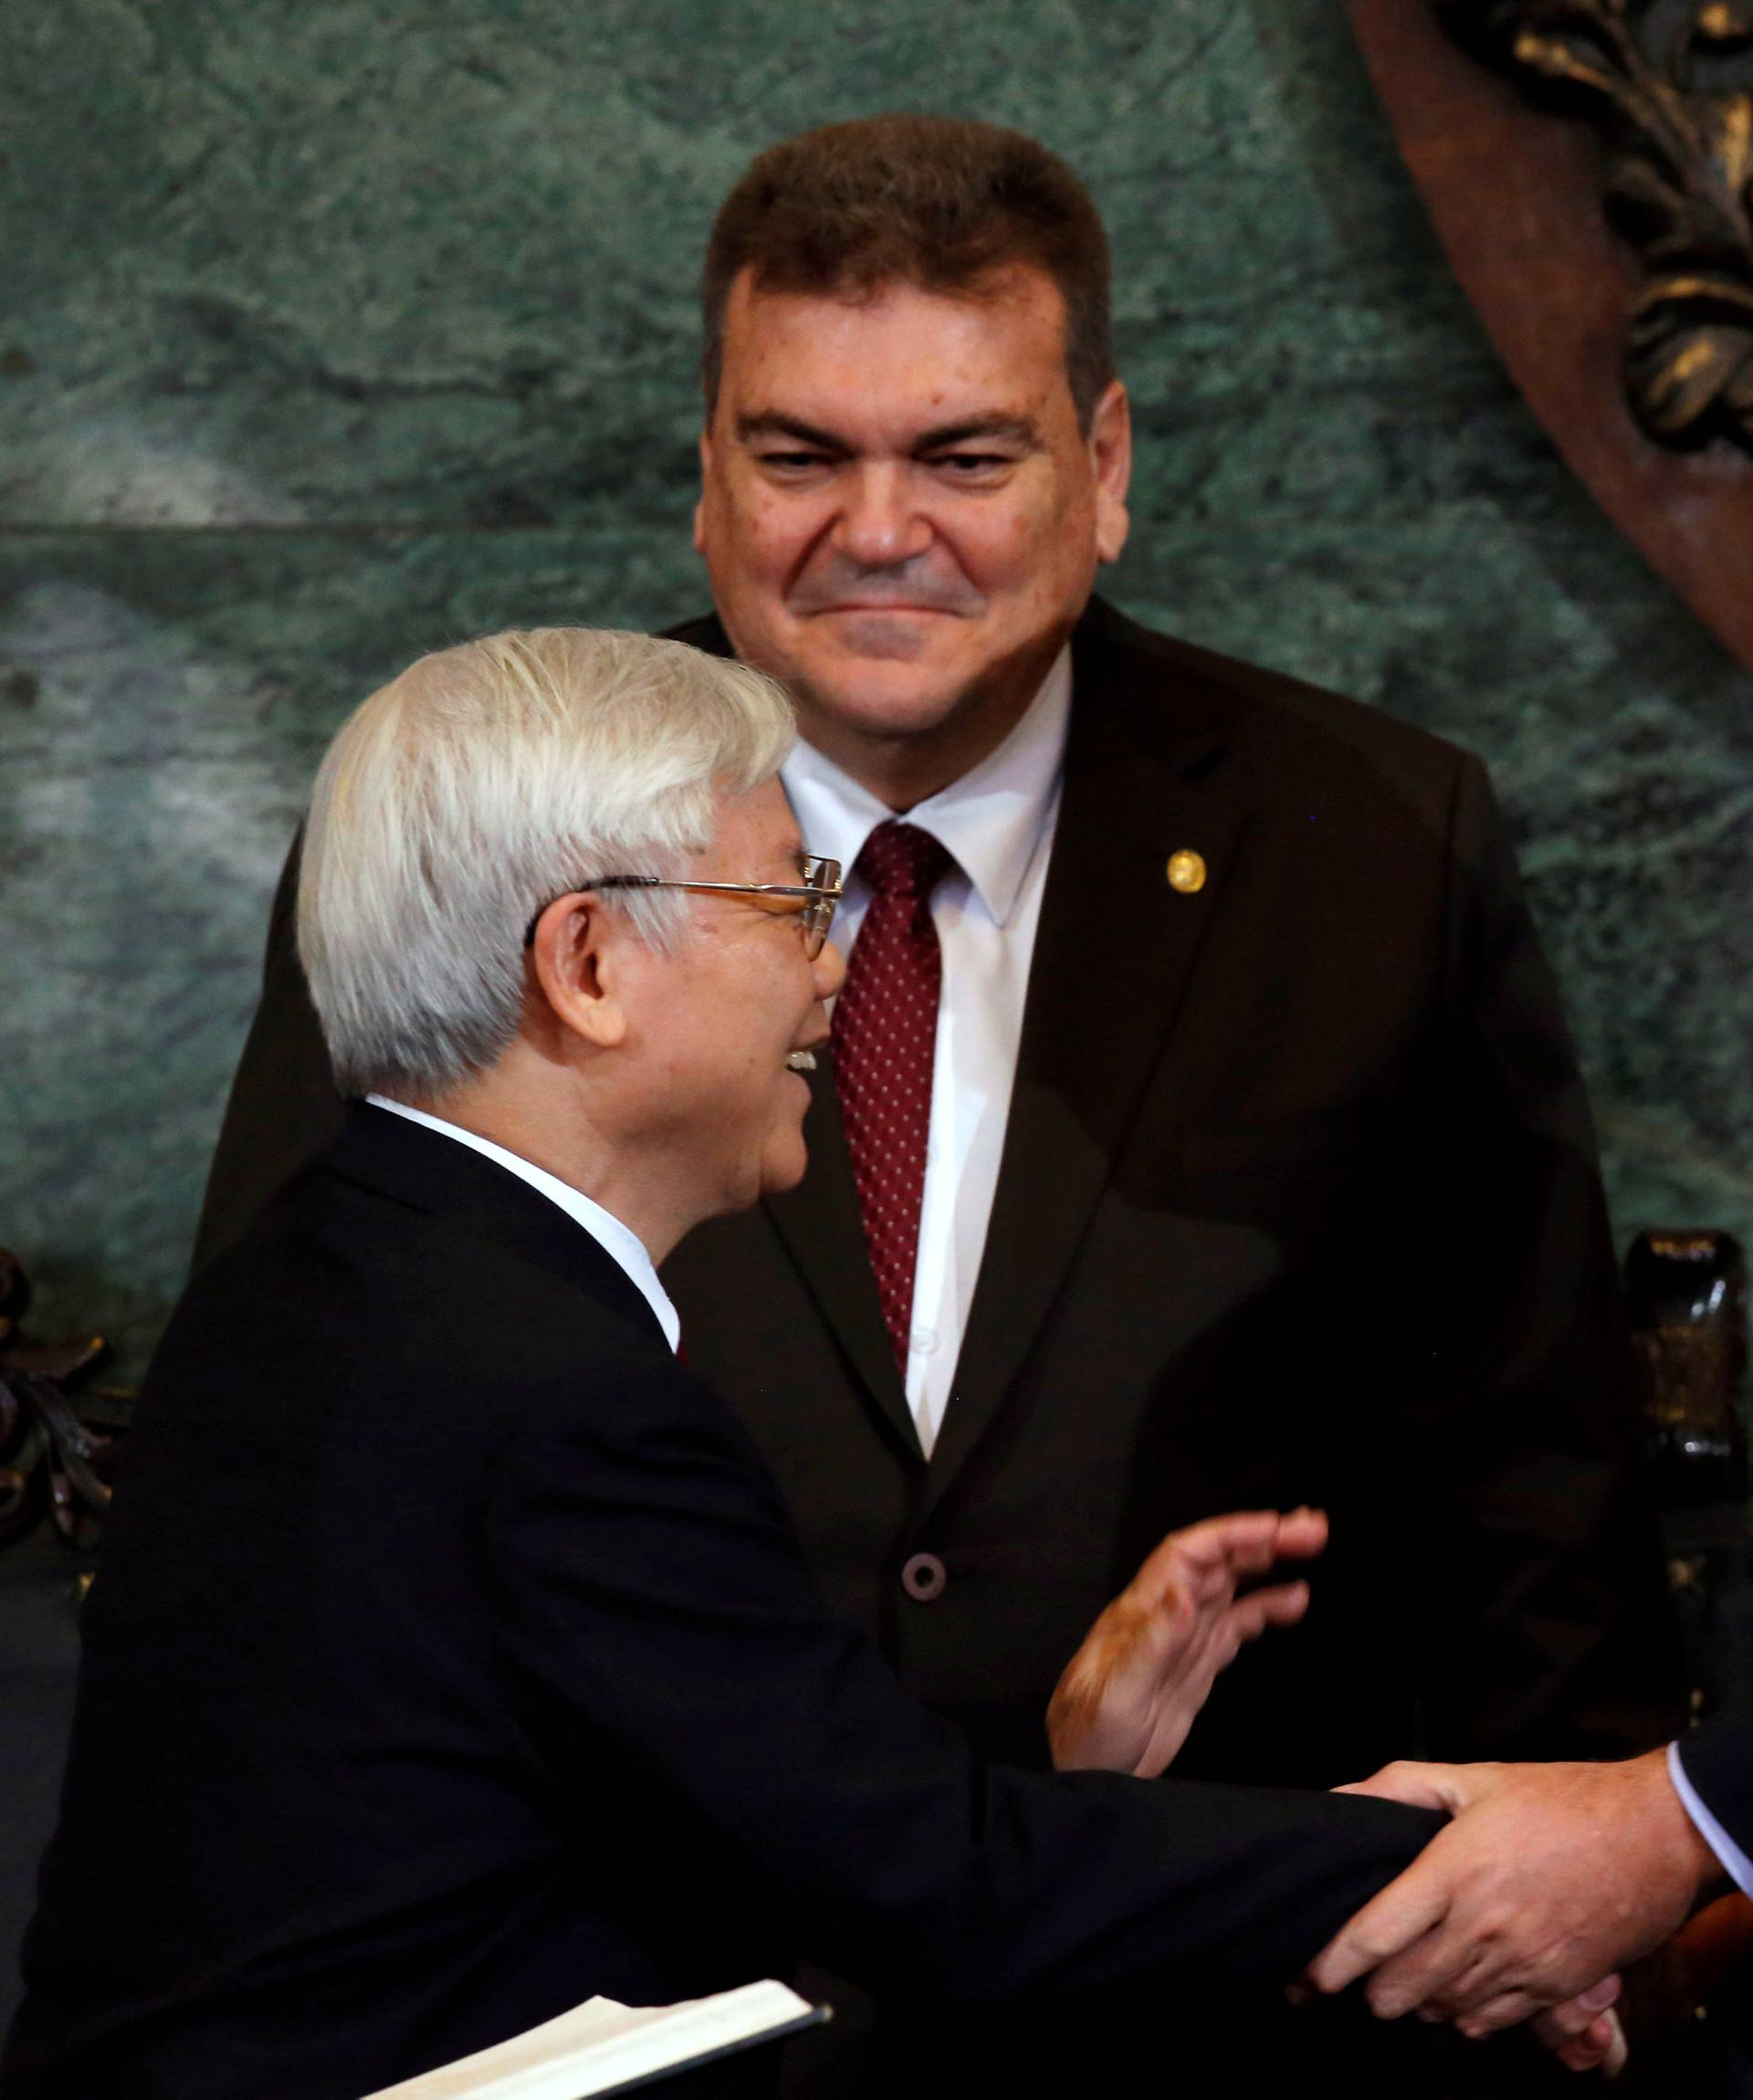 Vietnam's Communist Party Secretary General Nguyen Phu Trong shakes hands with Cuba's First Vice-President Miguel Diaz-Canel, next to Gustavo Cobreiro, rector of the University of Havana, in Havana